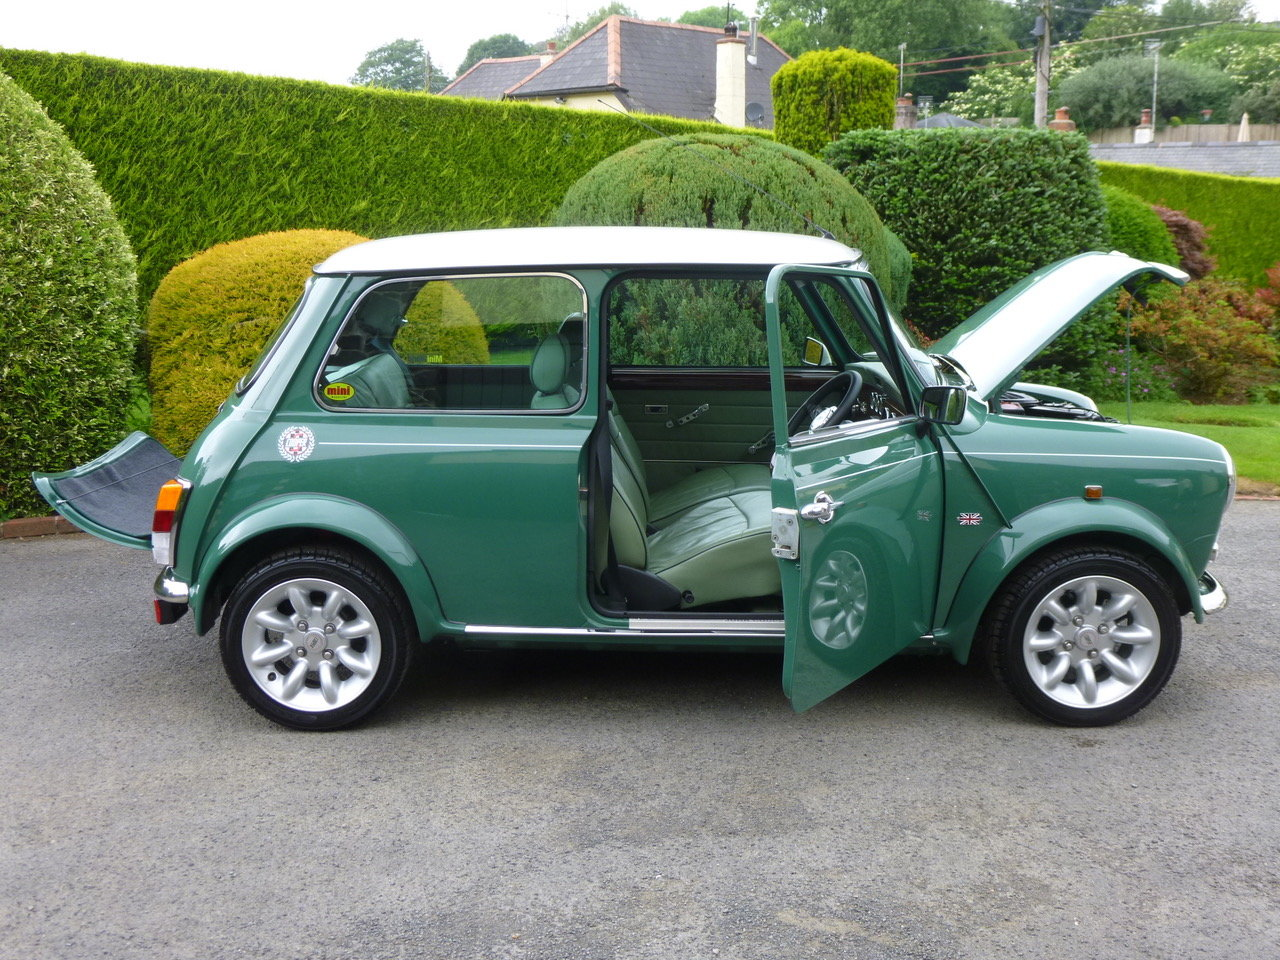 1997 Outstanding Mini John Cooper S Works On Just 19820 Miles. SOLD (picture 3 of 25)